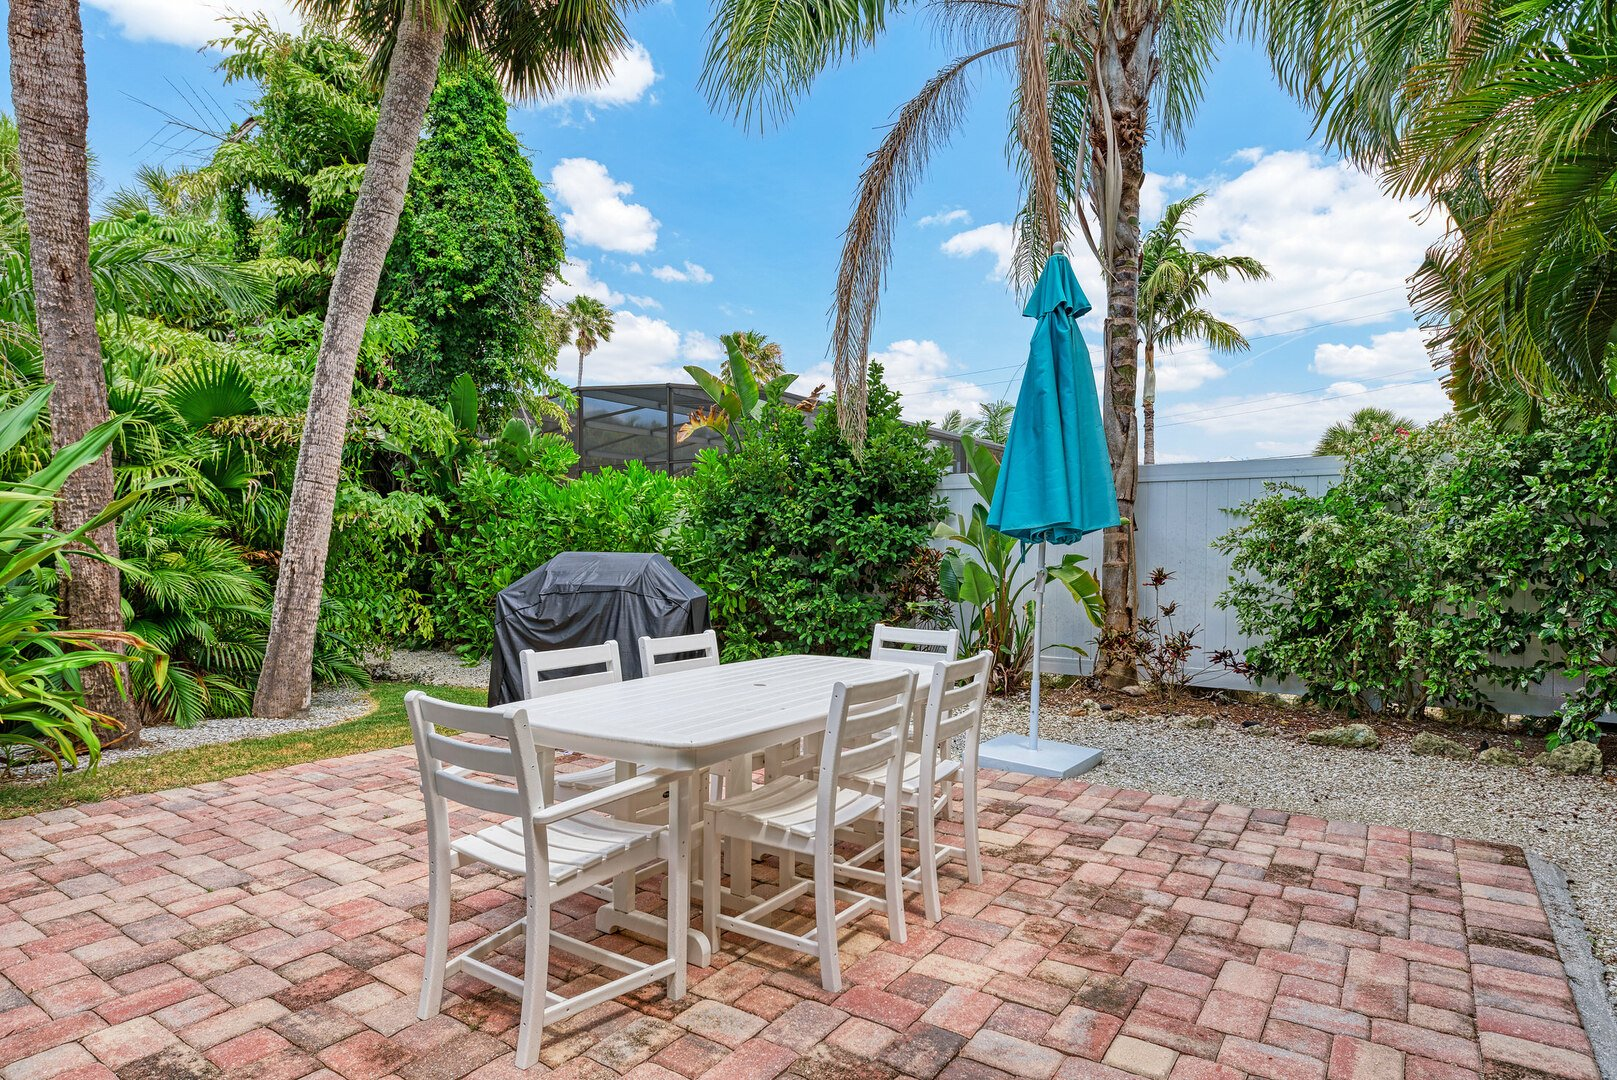 Barefoot Bungalow patio area with dining table